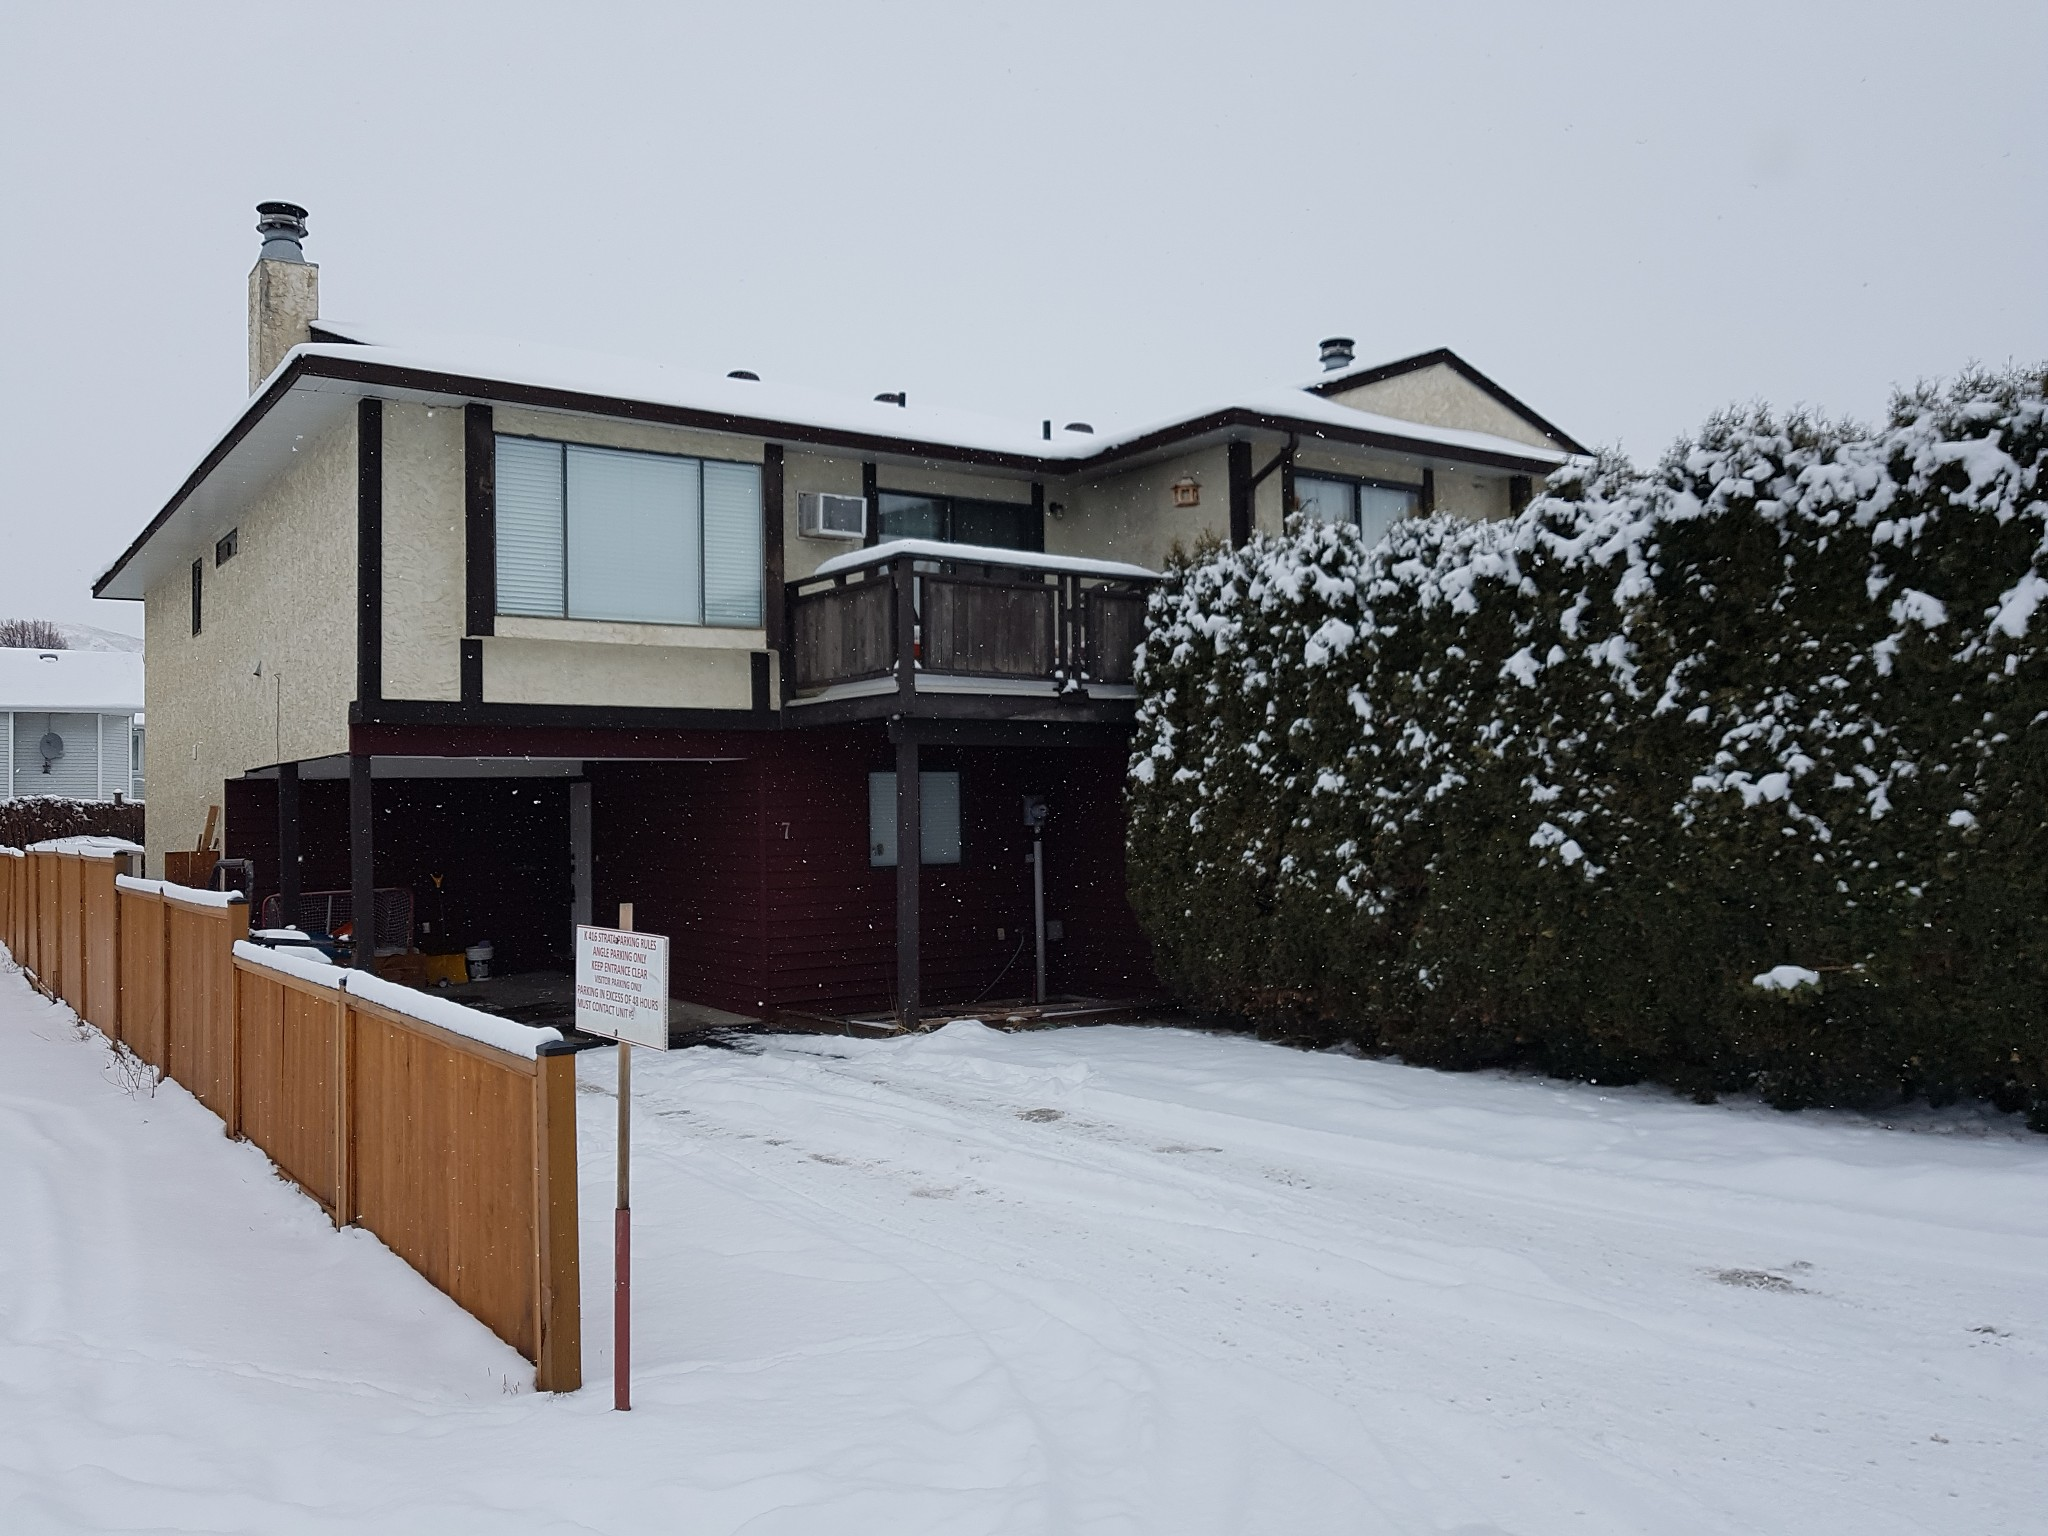 Main Photo: 7 685 SINGH in KAMLOOPS: BROCK House 1/2 Duplex for sale : MLS® # 144277